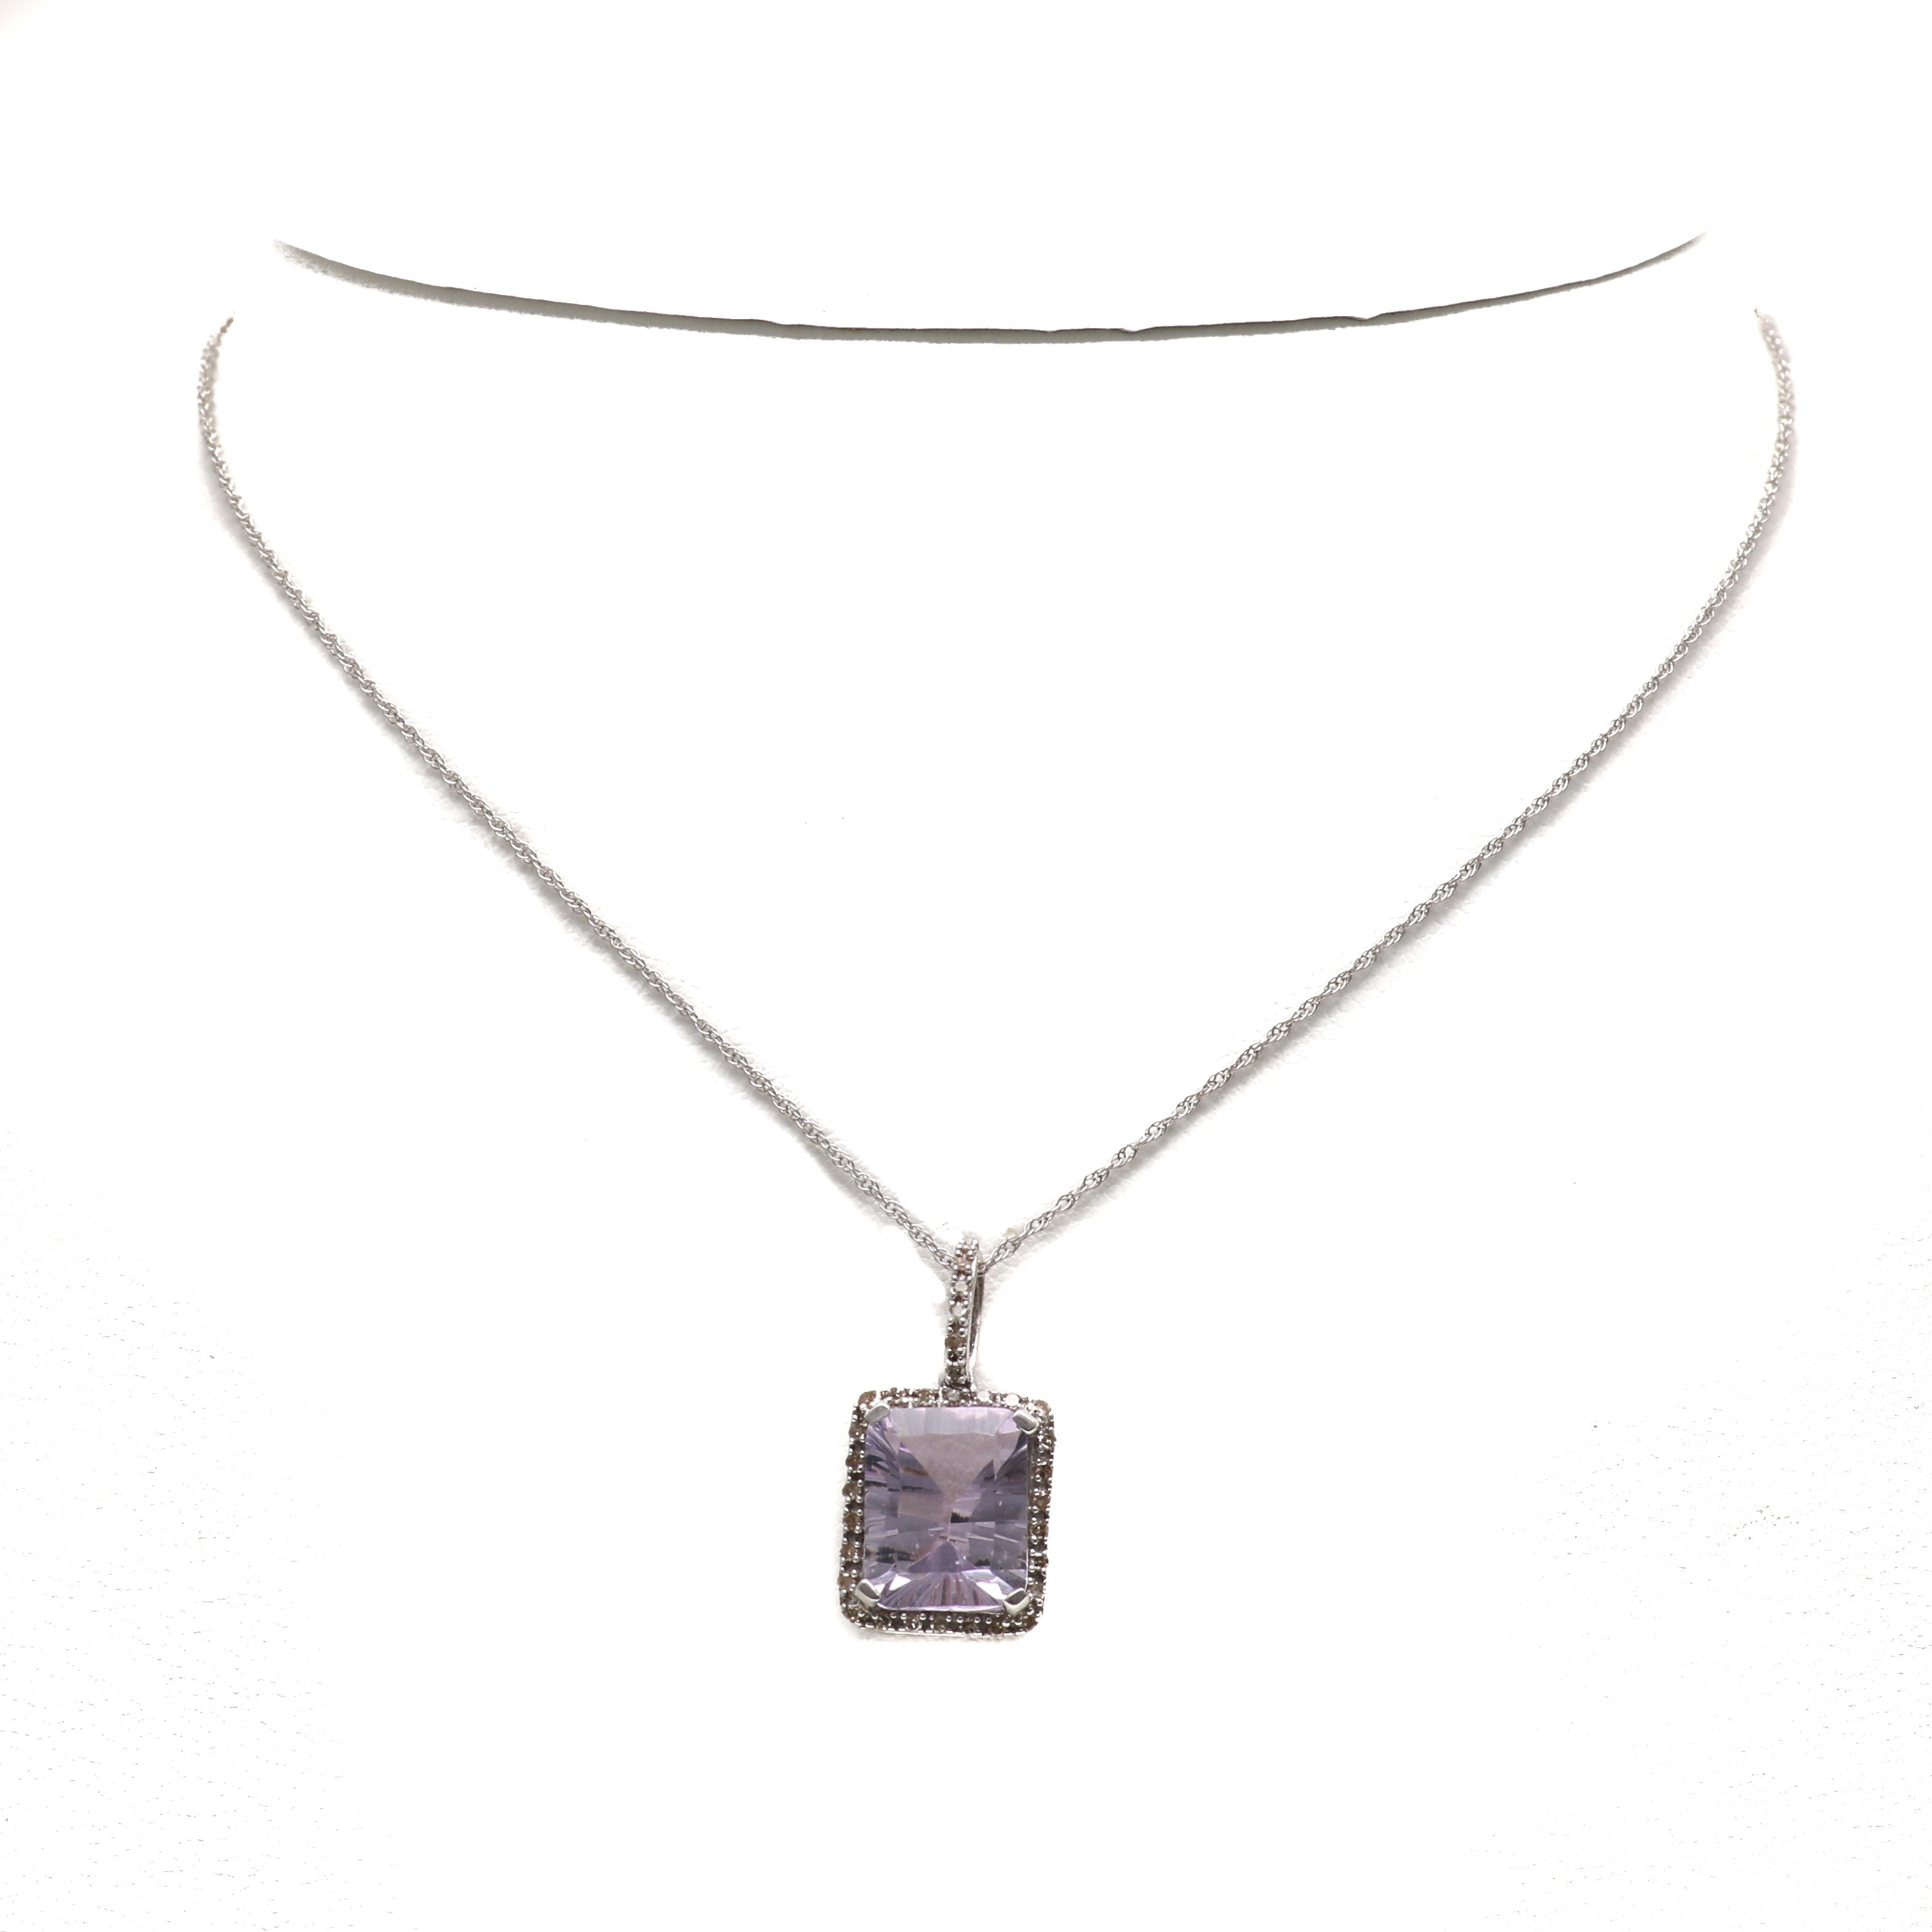 10K White Gold Amethyst and Diamond Pendant Necklace